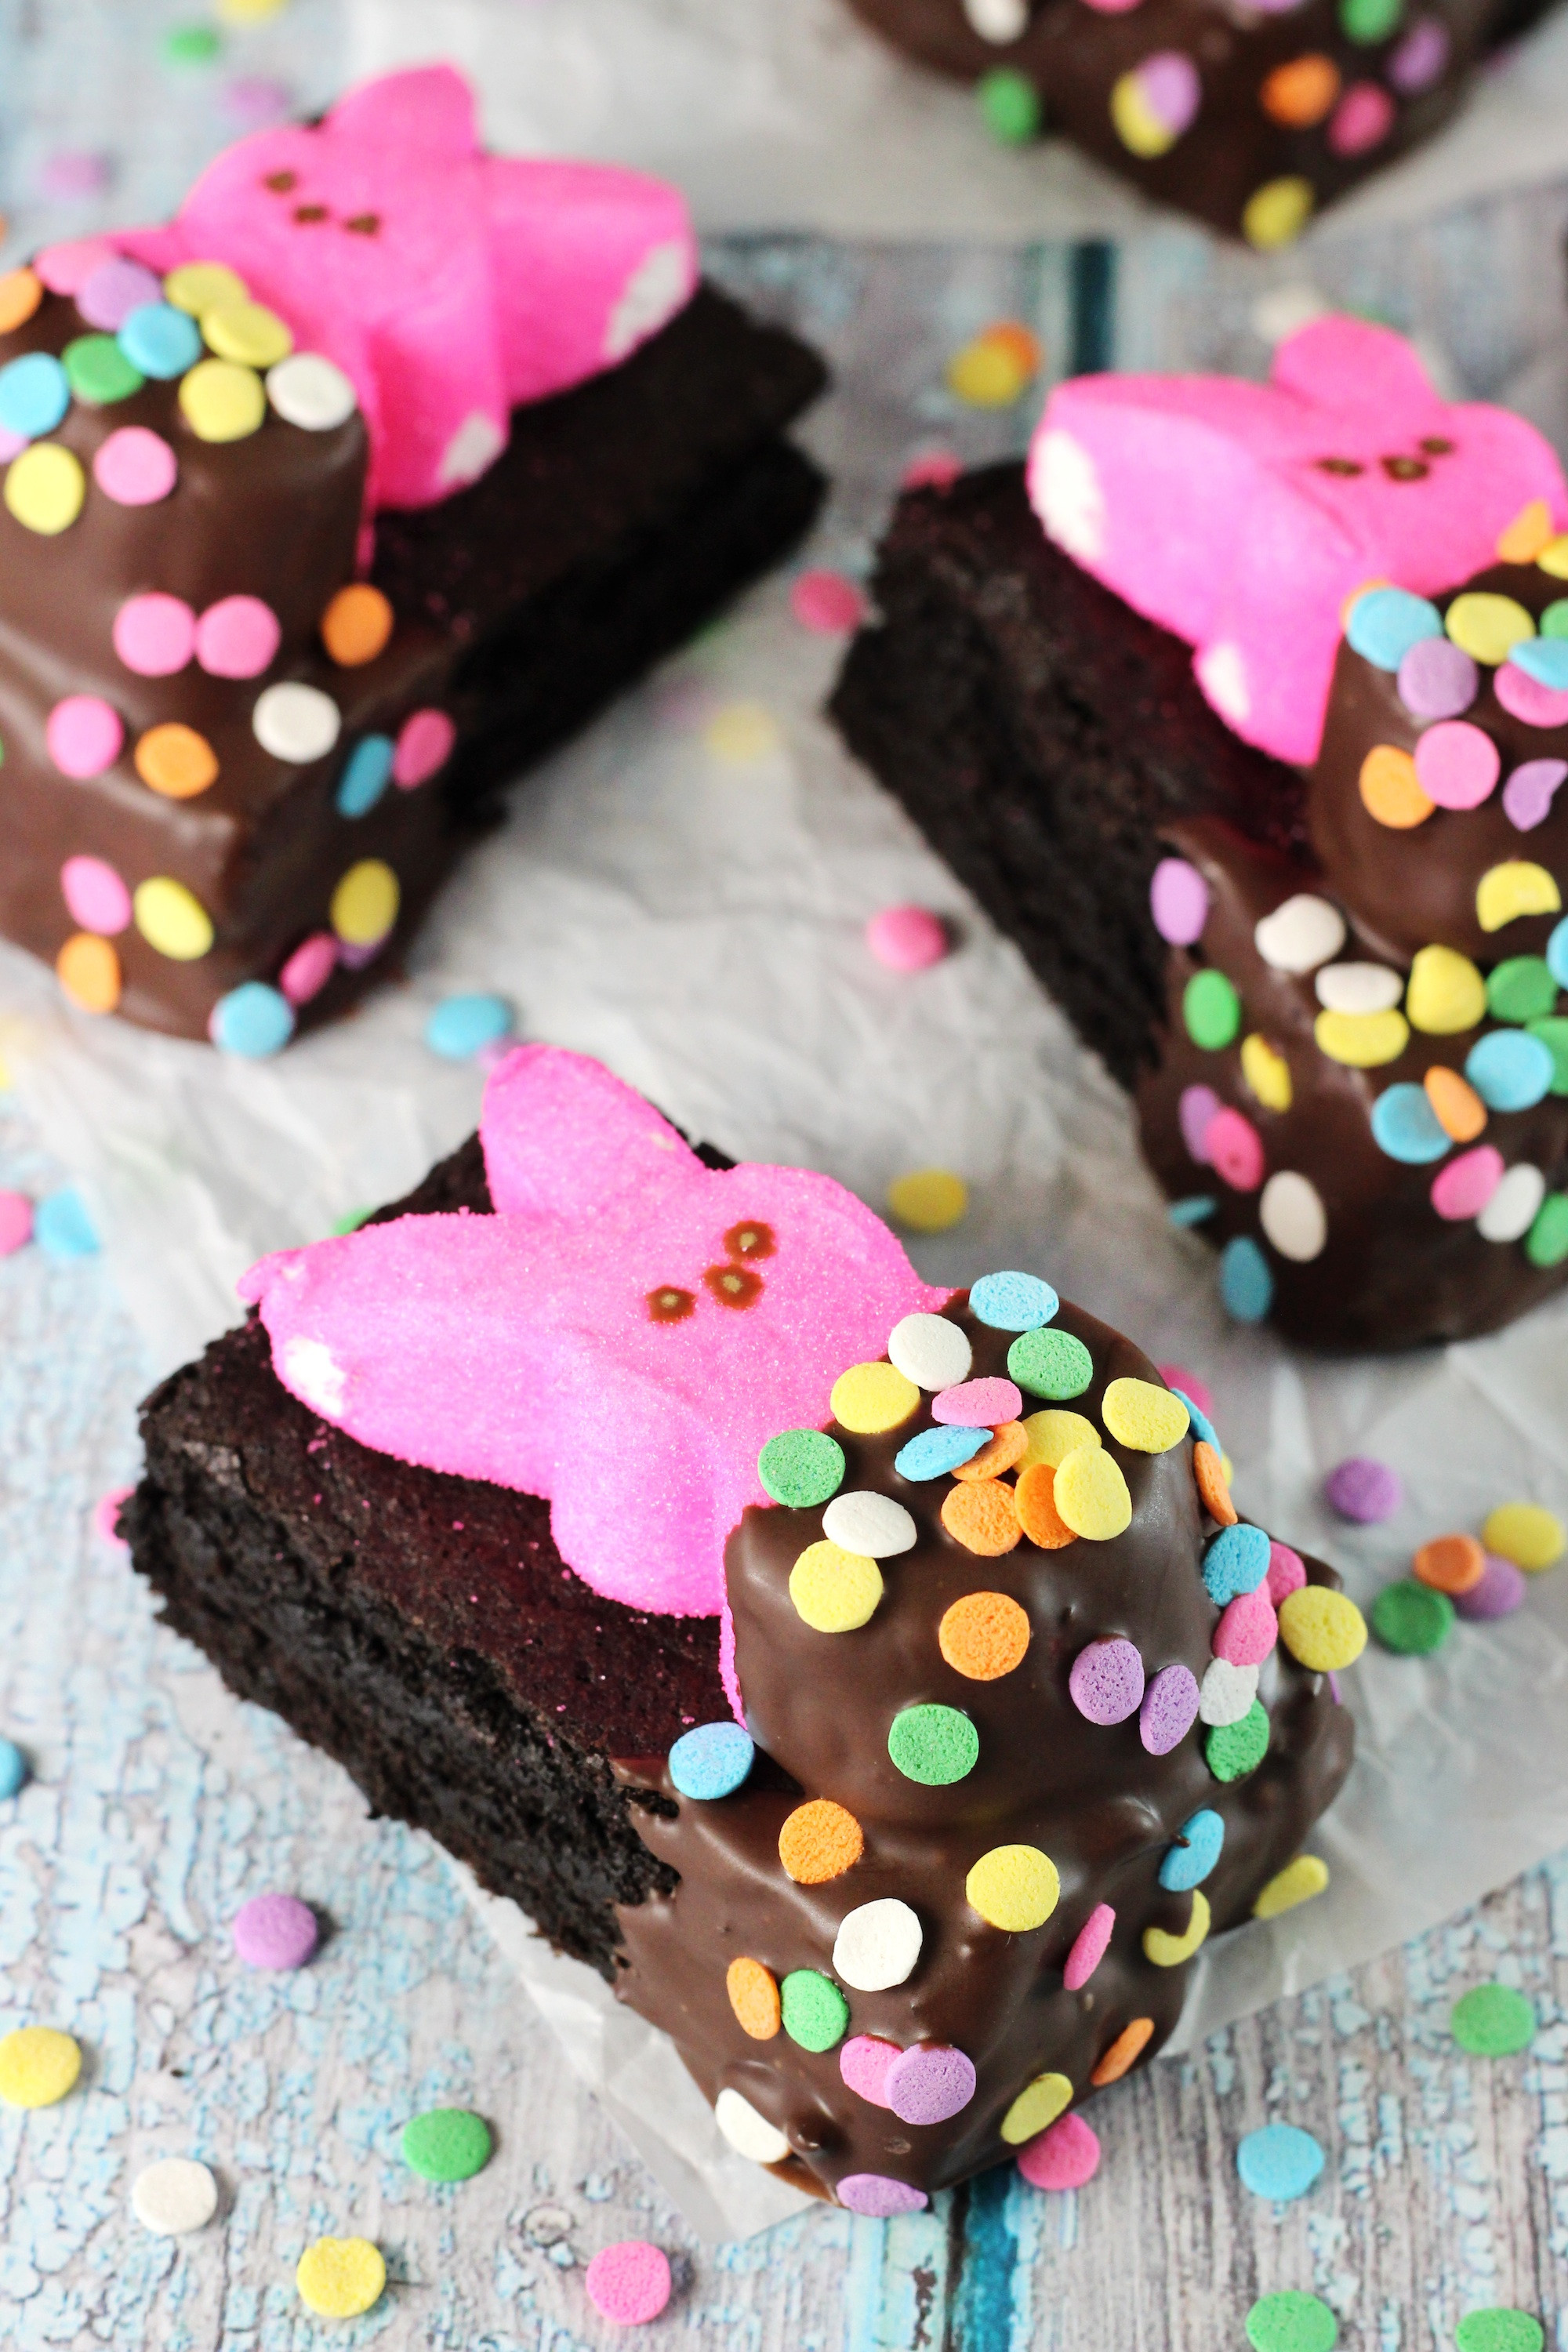 Easy Easter Dessert Recipies  11 Easy Easter Desserts That Are Almost Too Adorable To